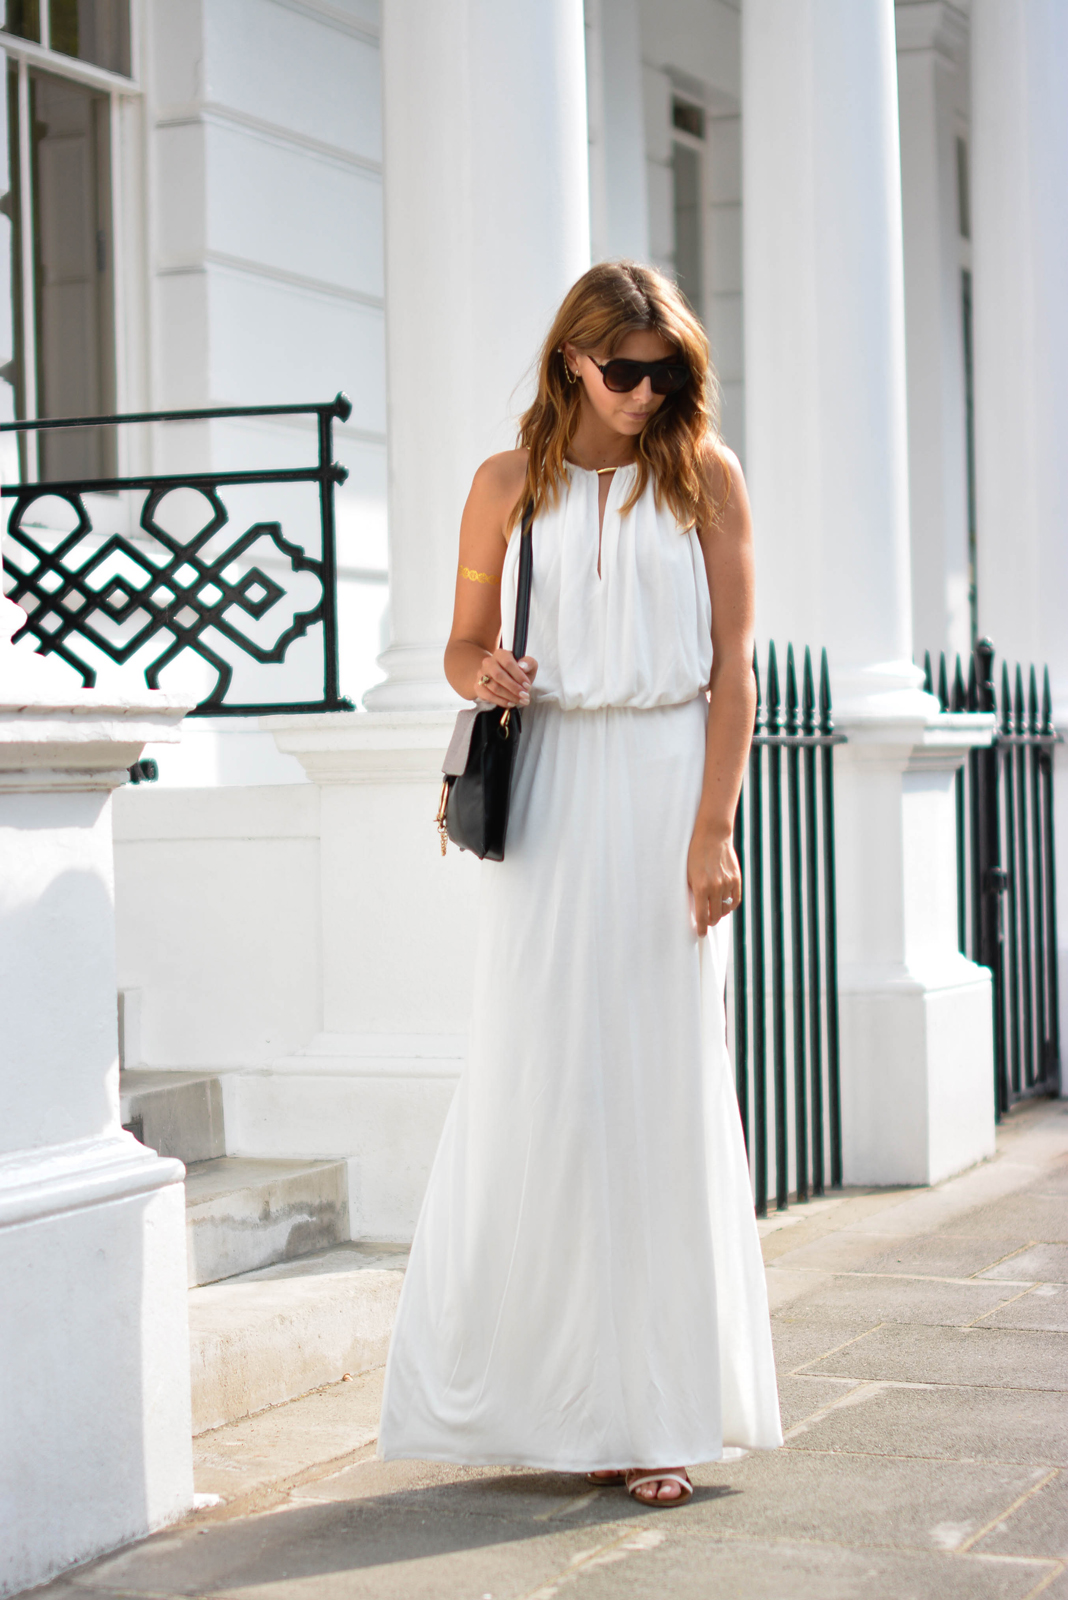 EJSTYLE - Melissa Odabash Rachel white grecian dress, gold chain and pearl ear cuff, Chloe Faye bag